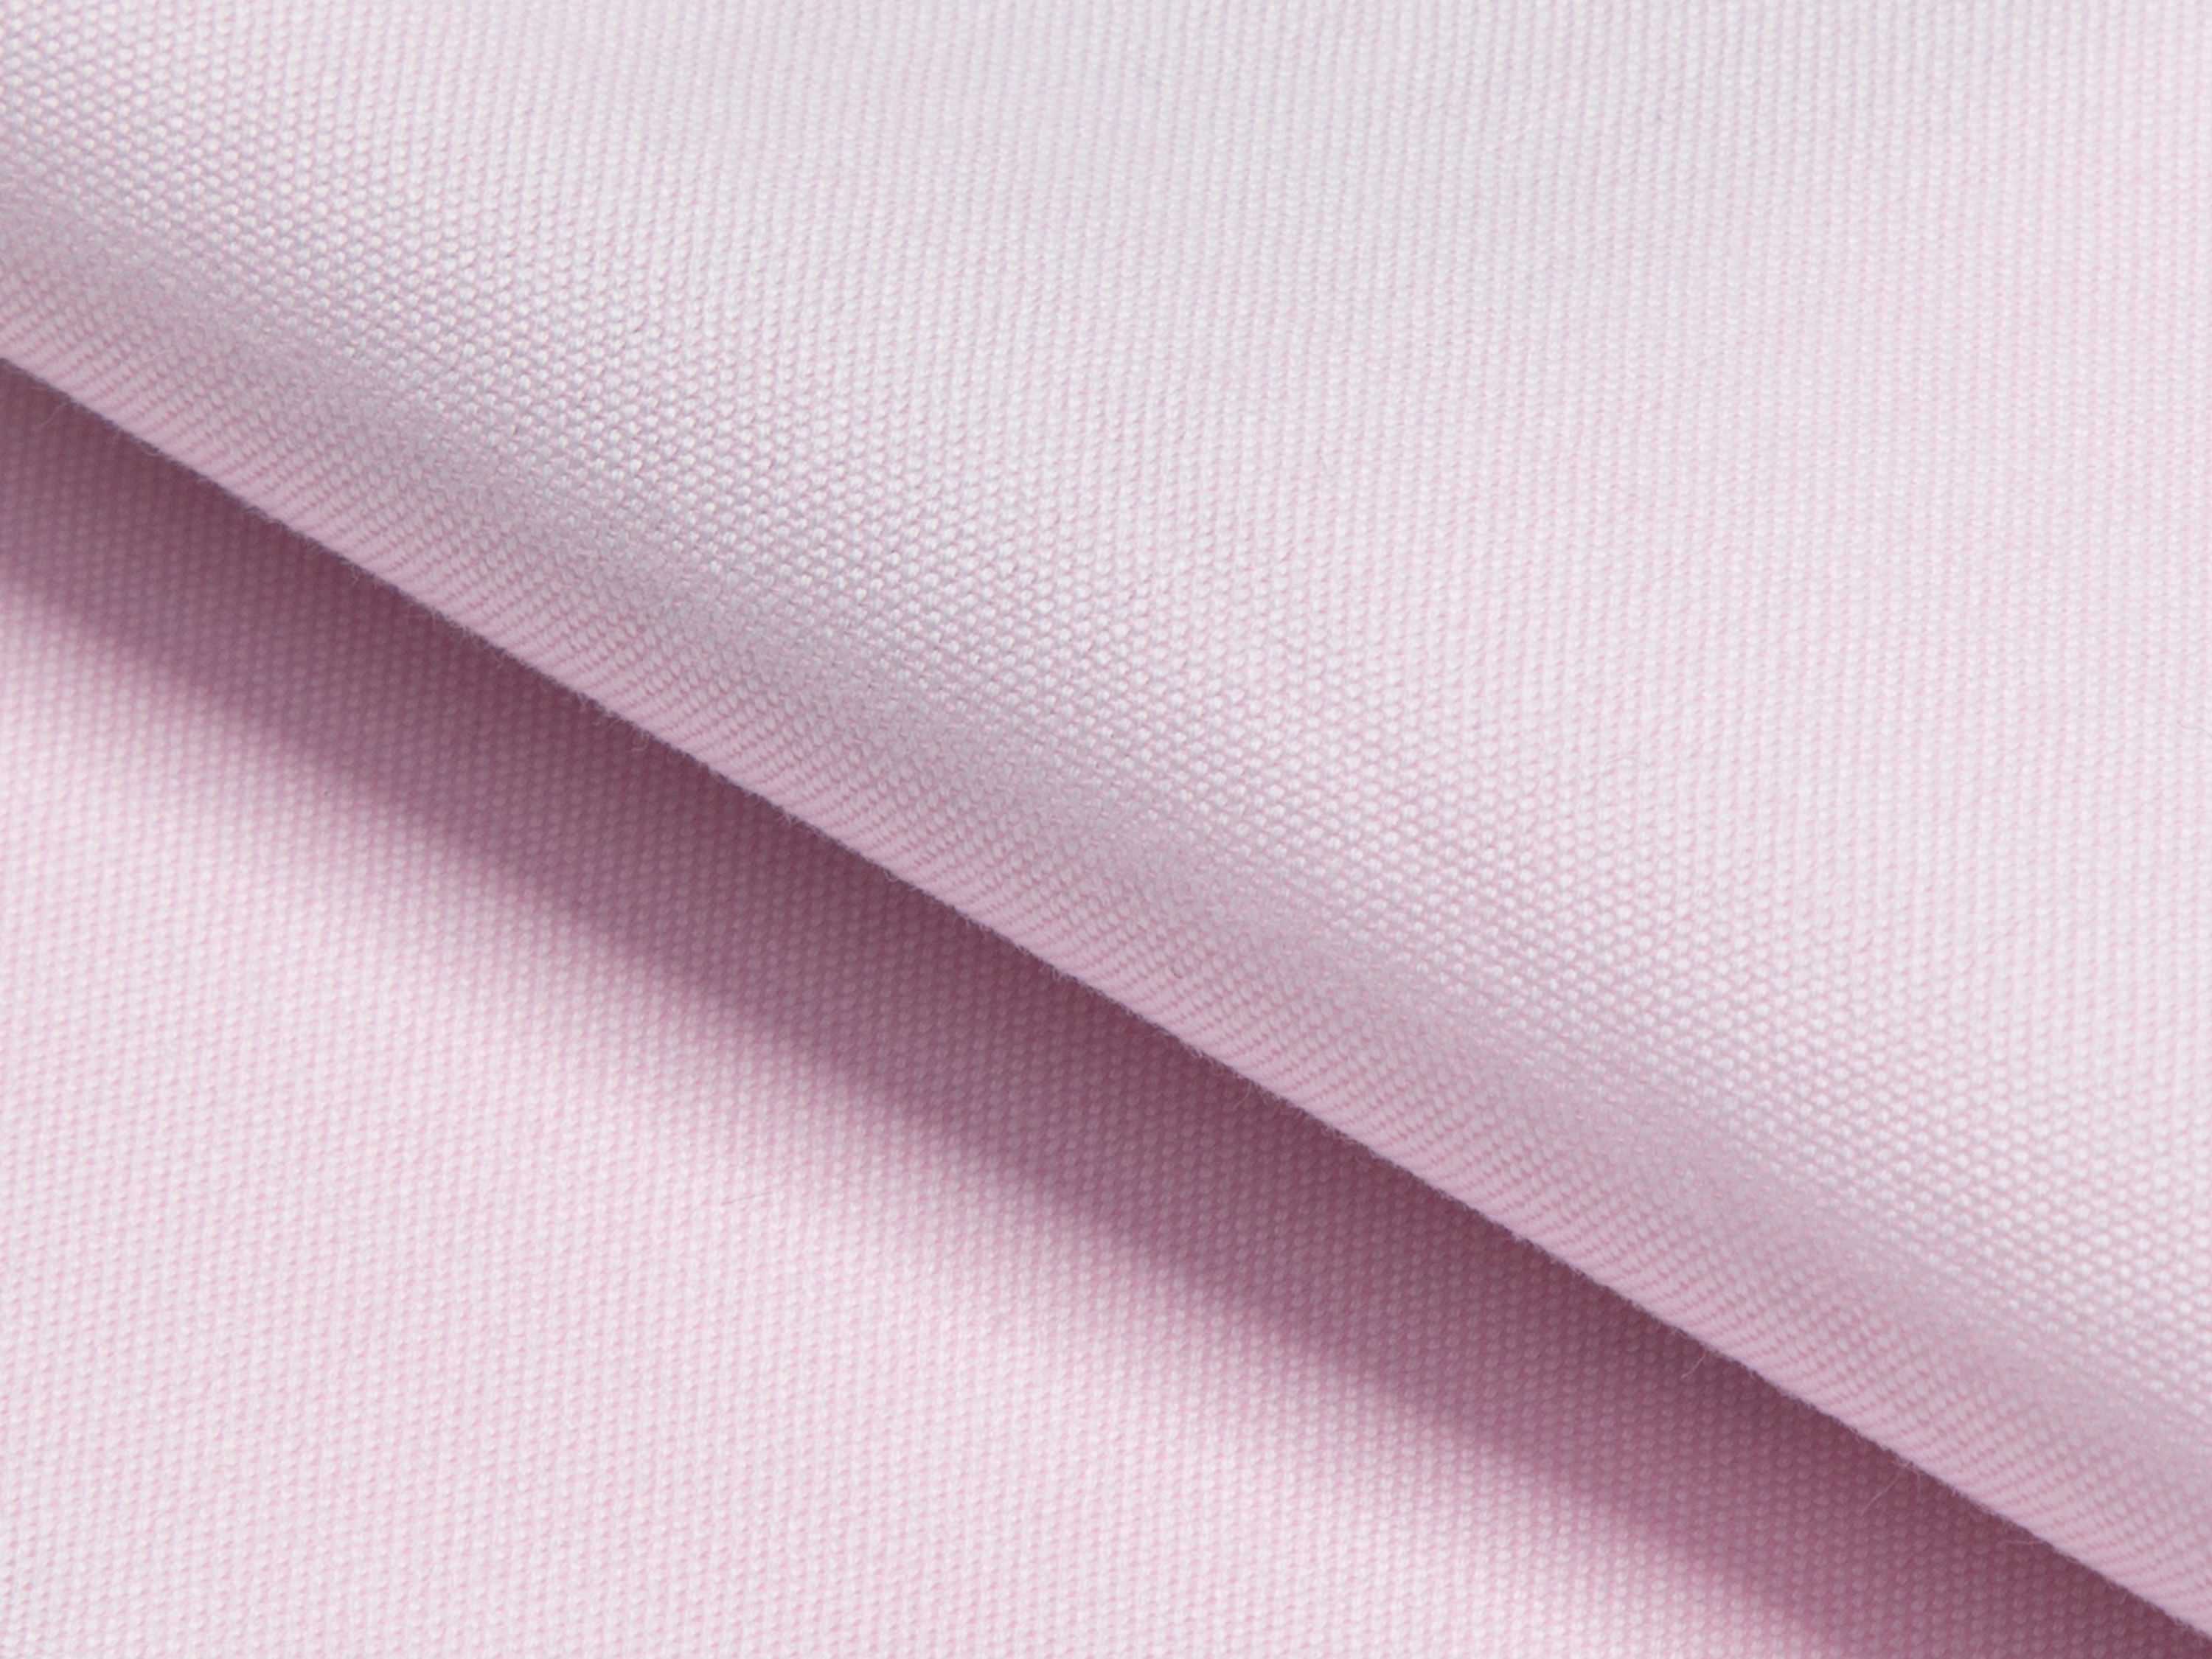 Buy tailor made shirts online - PINPOINT LUXURY (NEW) - Pinpoint Pink